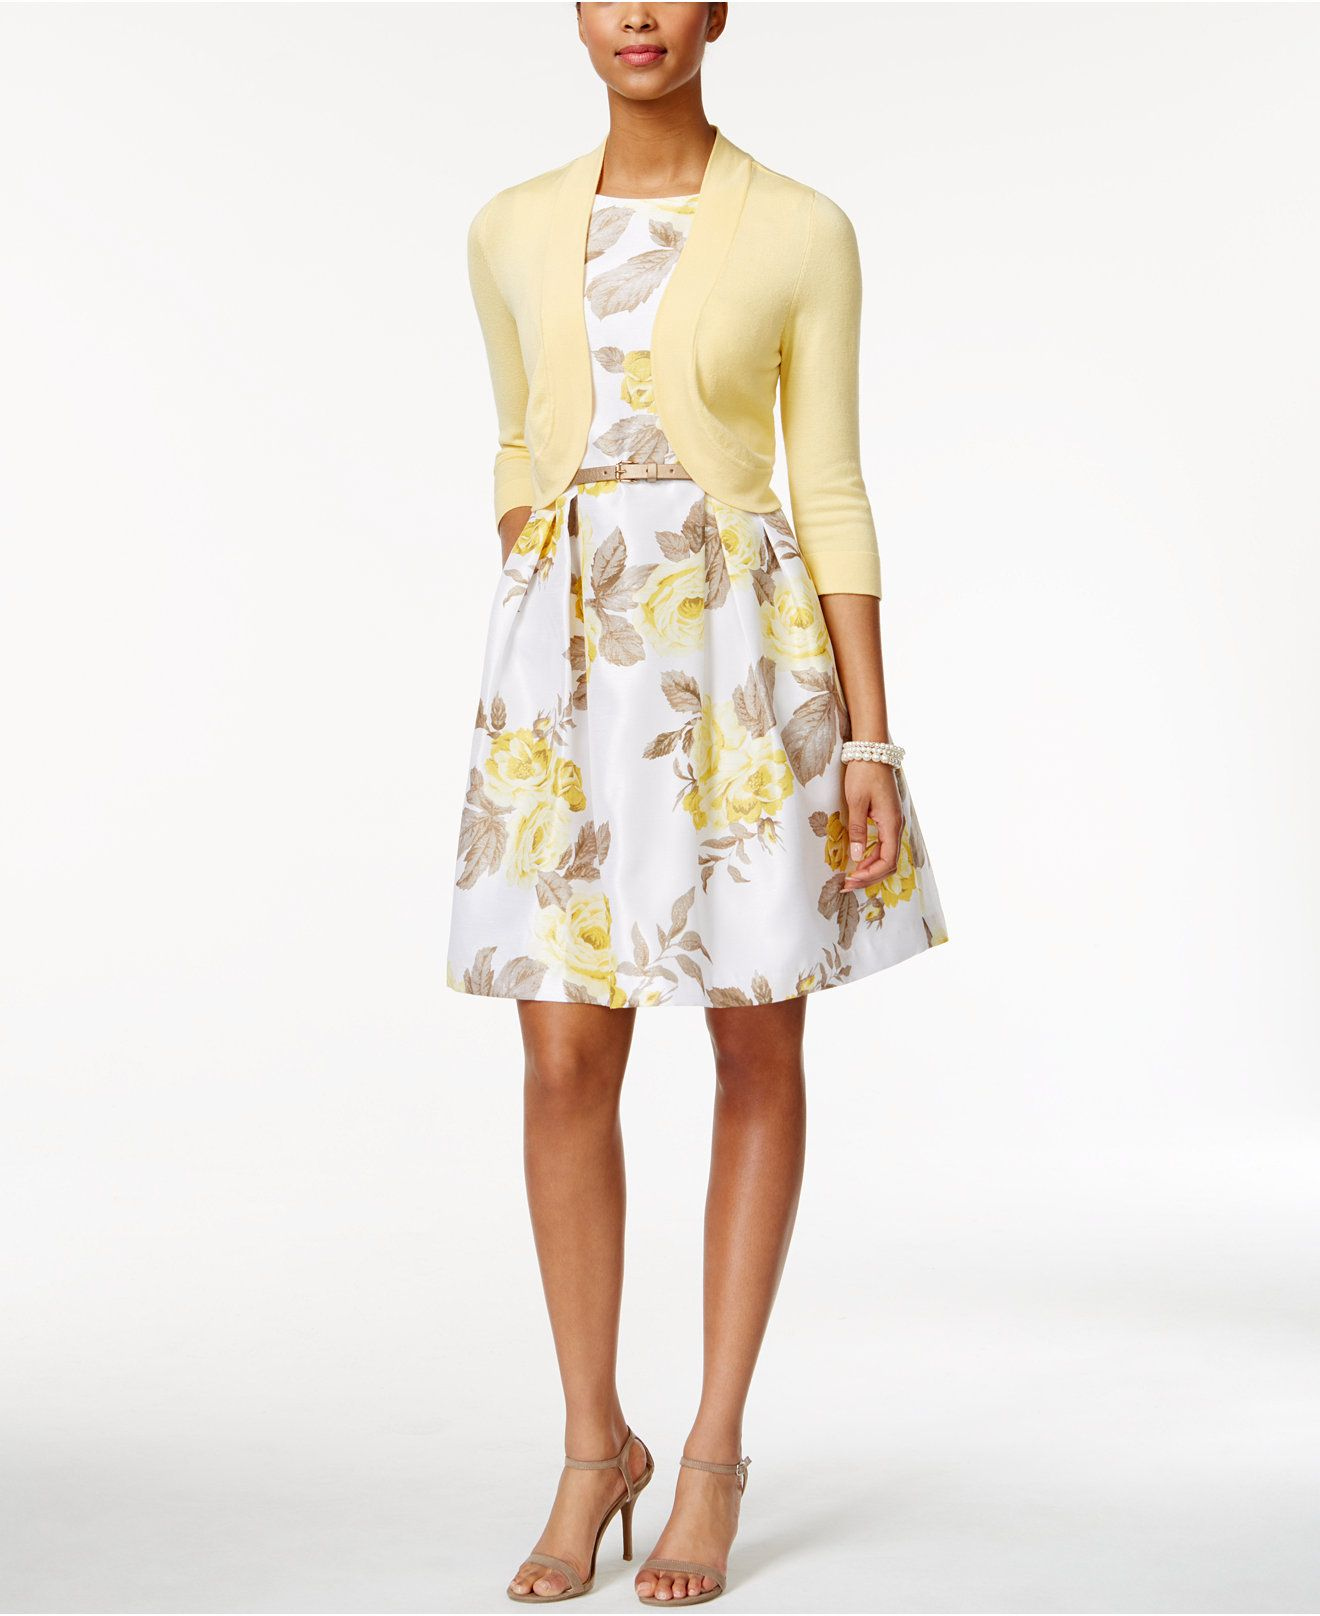 abb361f6eb88 Jessica Howard Petite Bolero Cardigan & Printed A-Line Dress - Dresses -  Women - Macy's